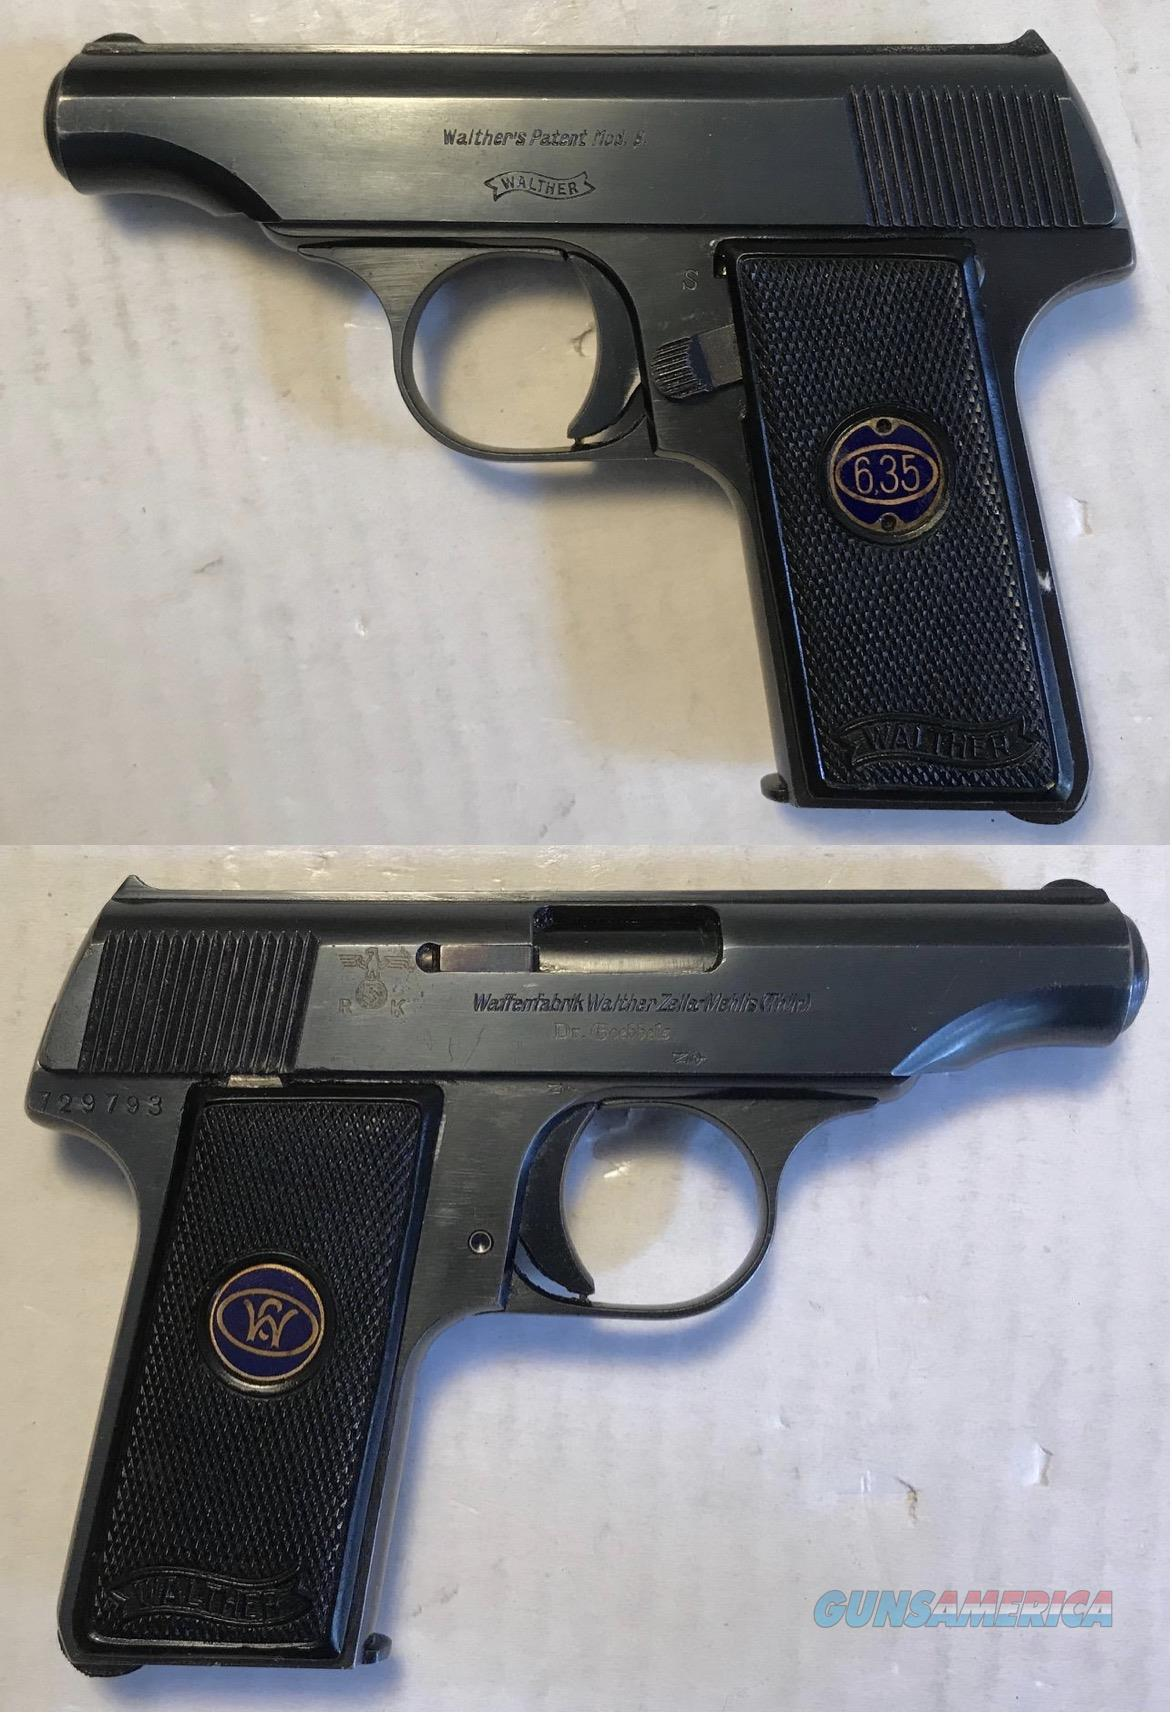 Walther Model 8 Dr. Goebbels personal sidearm C&R  Guns > Pistols > Walther Pistols > Pre-1945 > Other